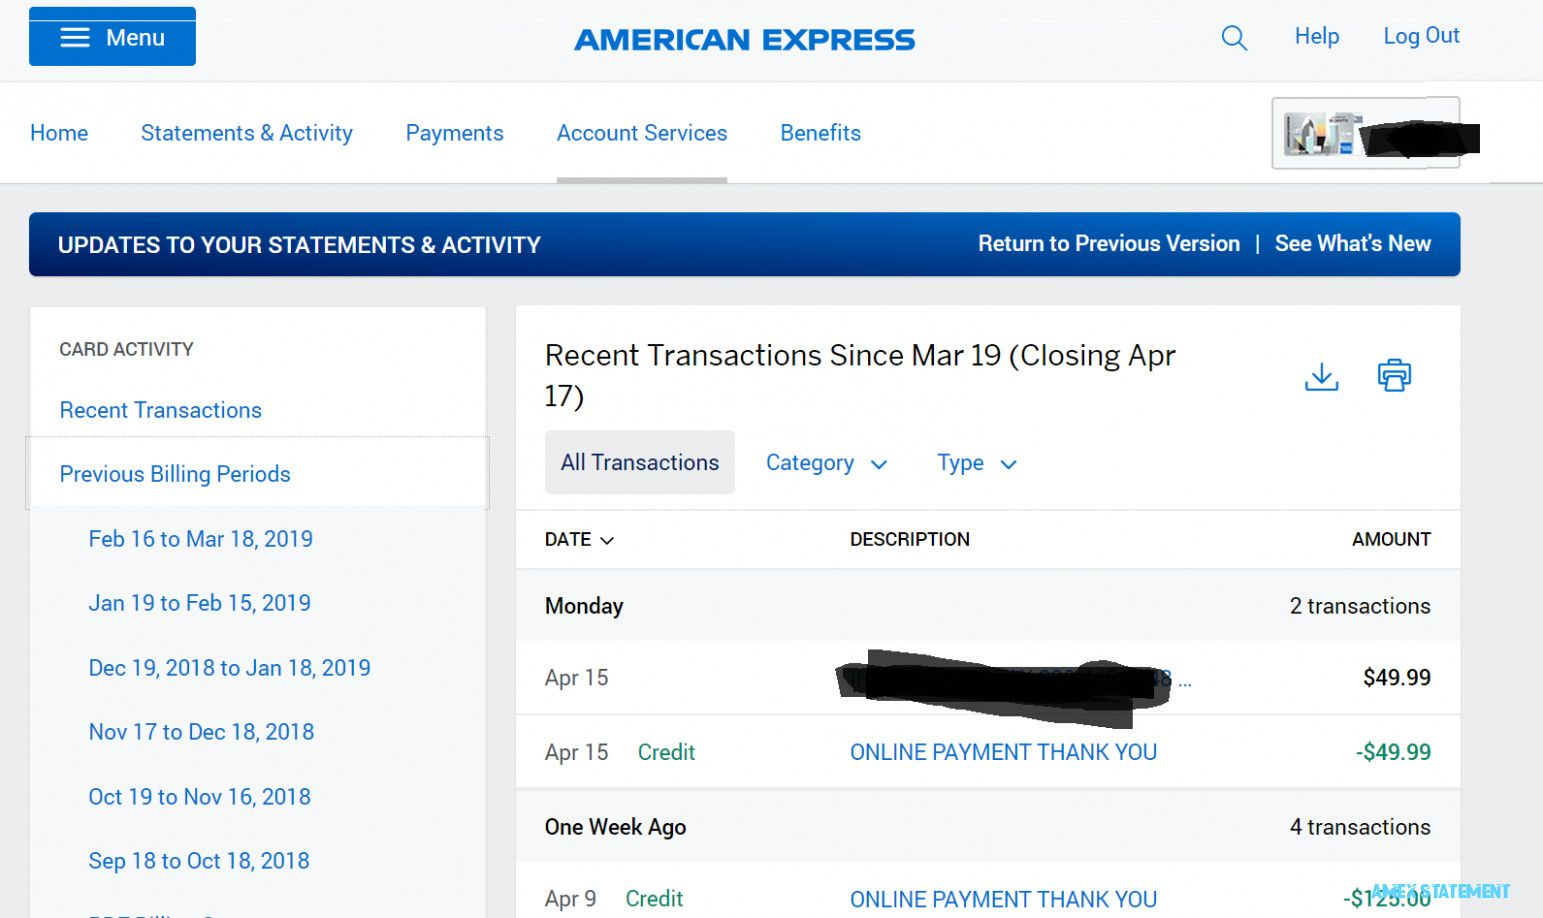 11 Precautions You Must Take Before Attending Amex Statement